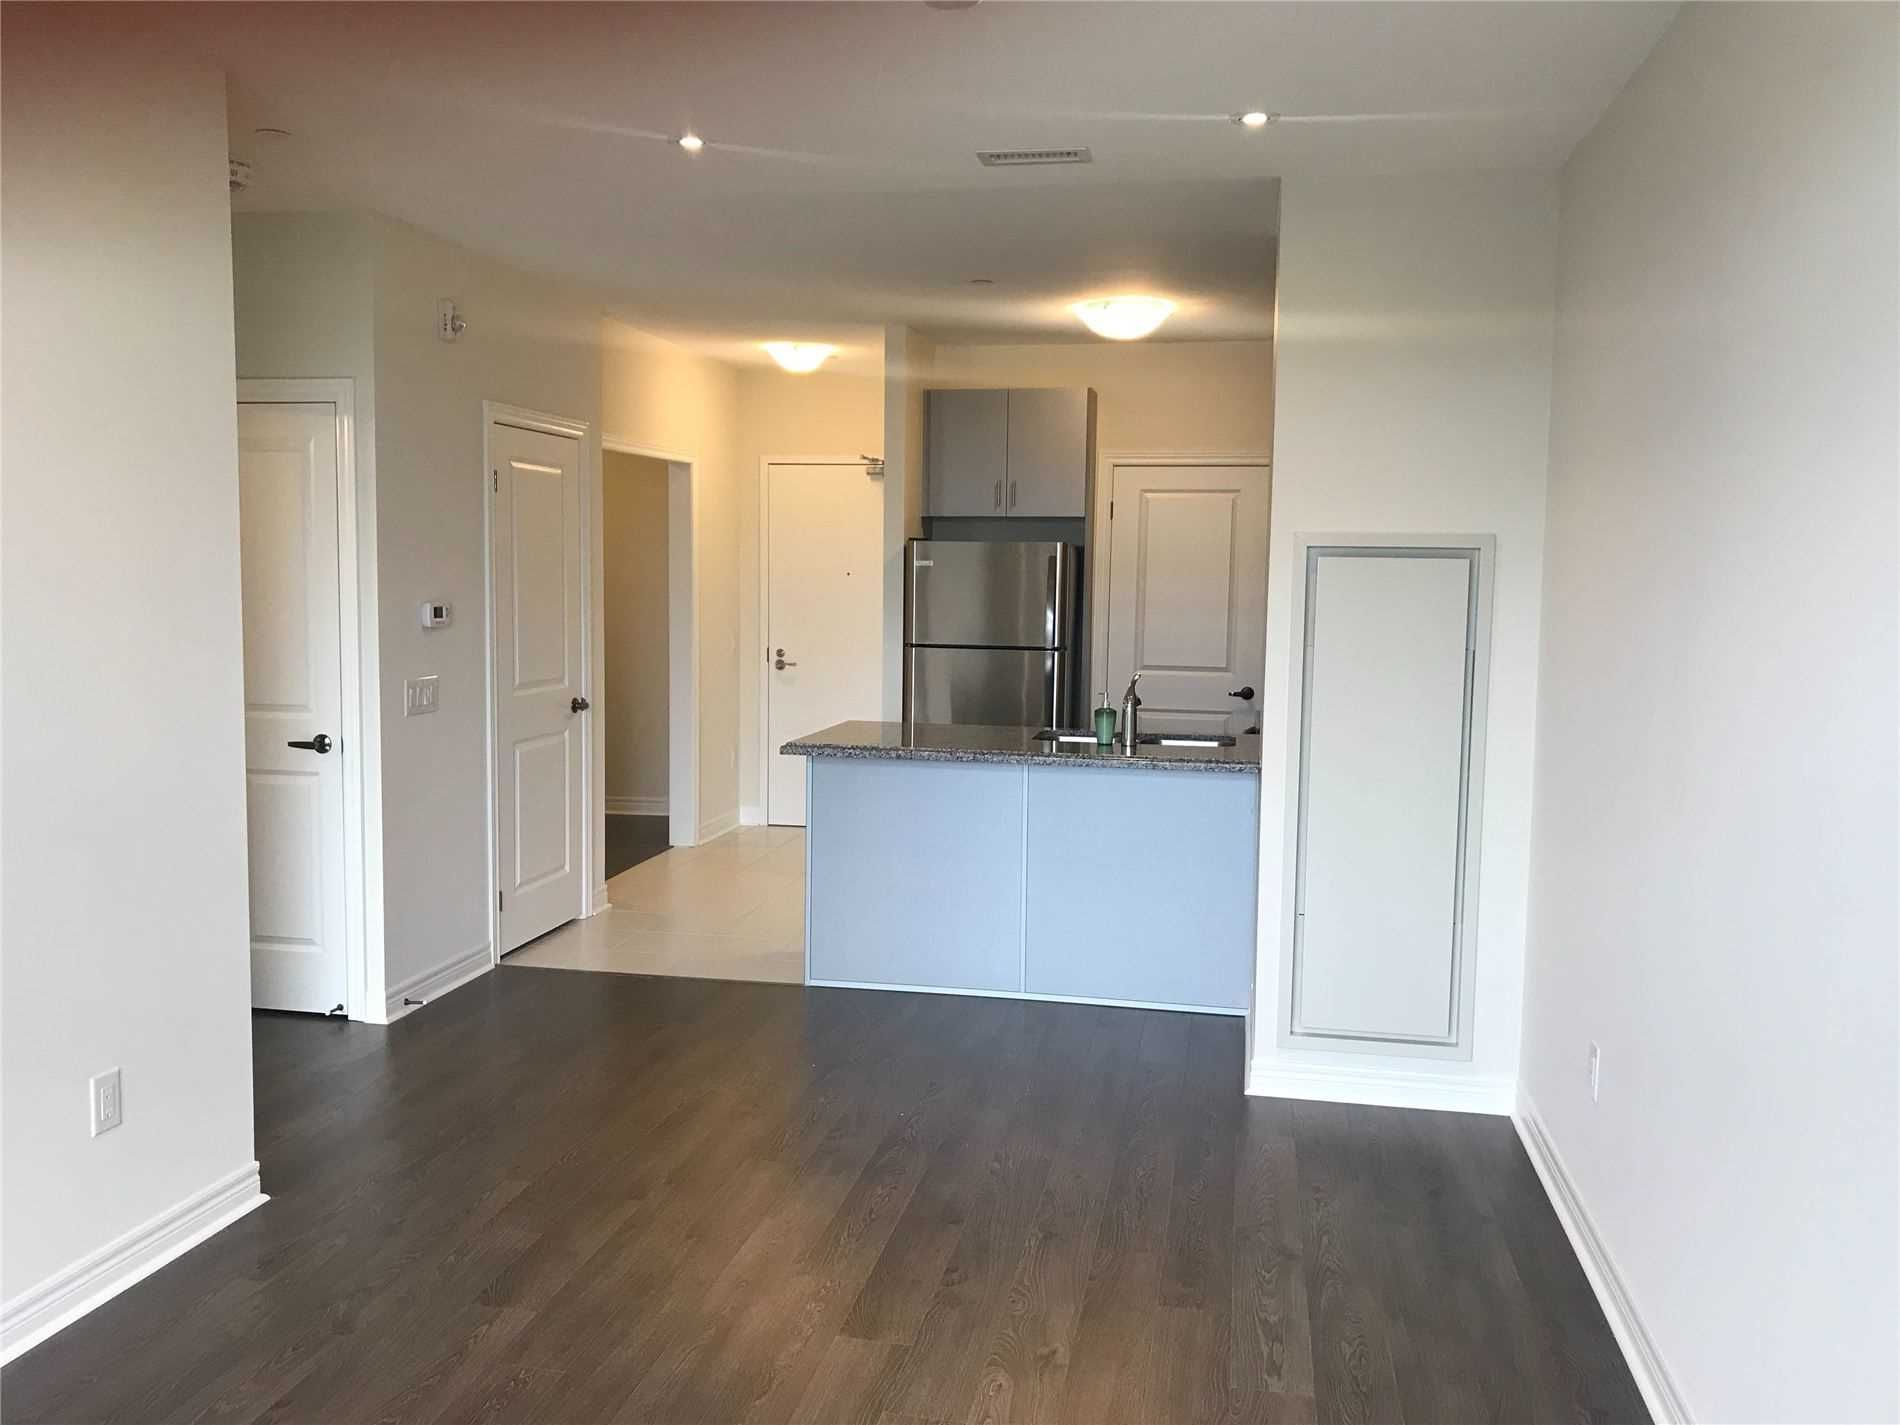 7325 Markham Rd, unit 726 for rent in Toronto - image #2